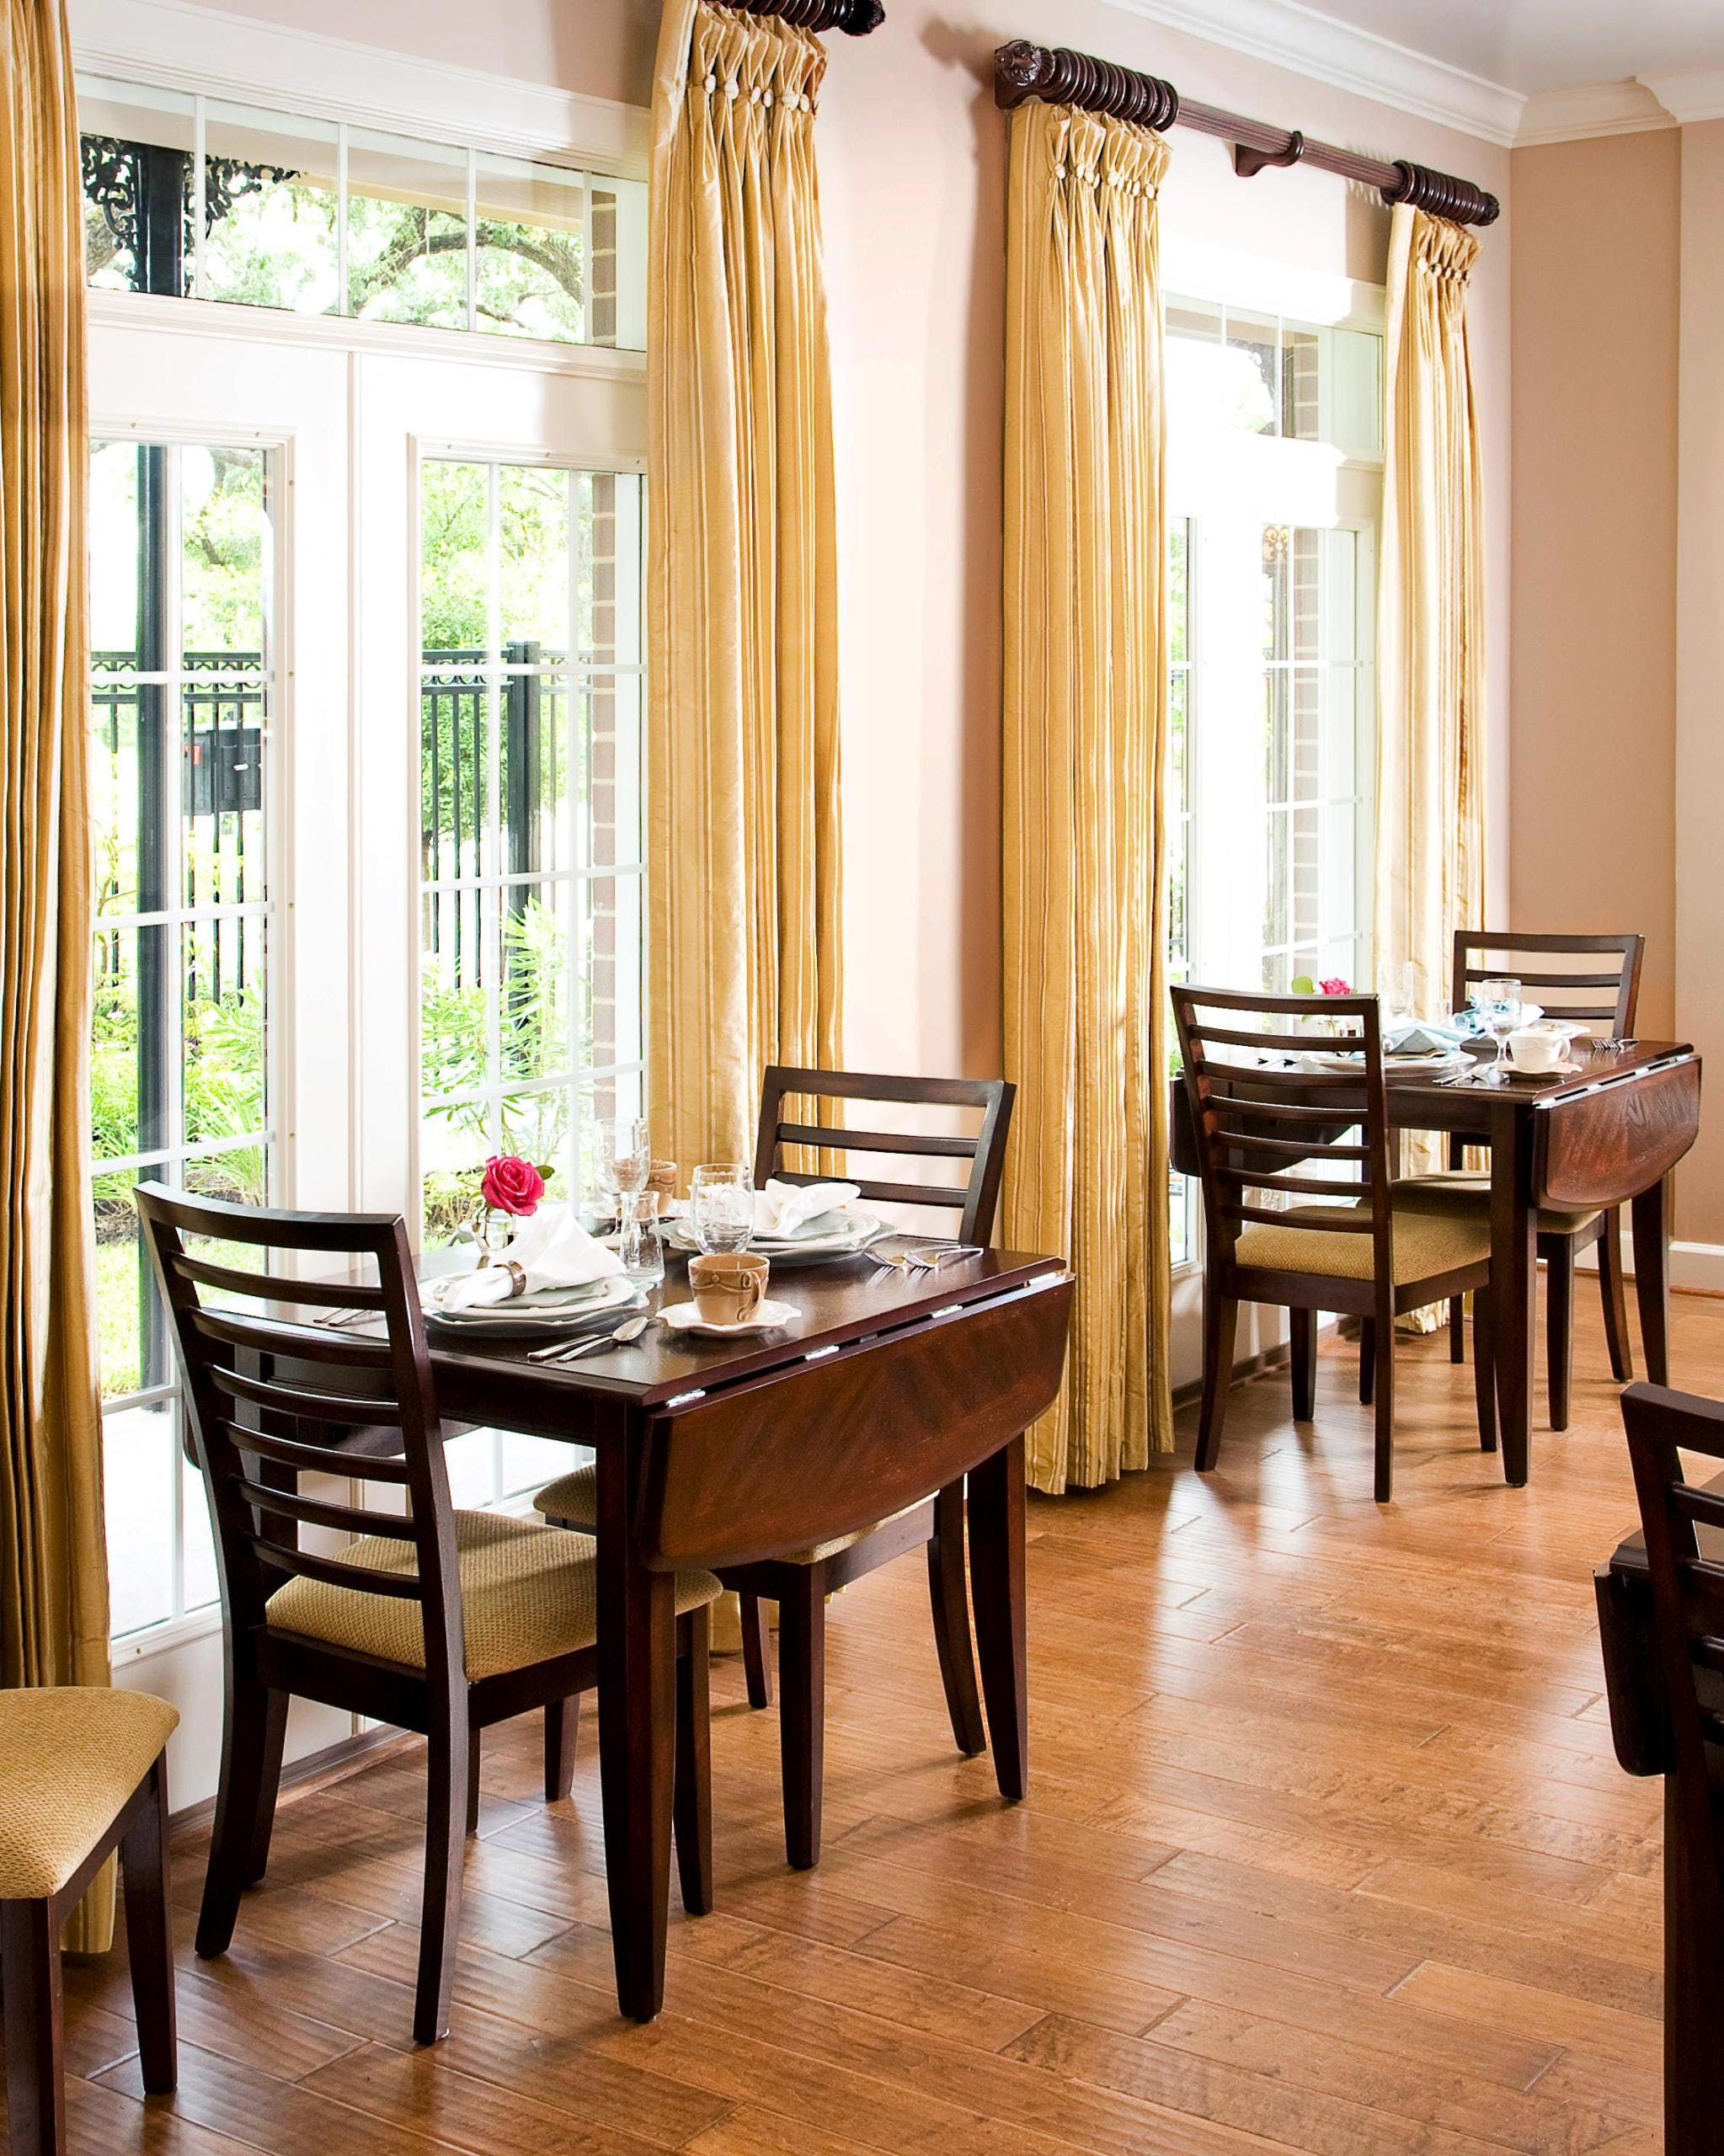 texas-staycation-la-maison-midtown-dining-room-1